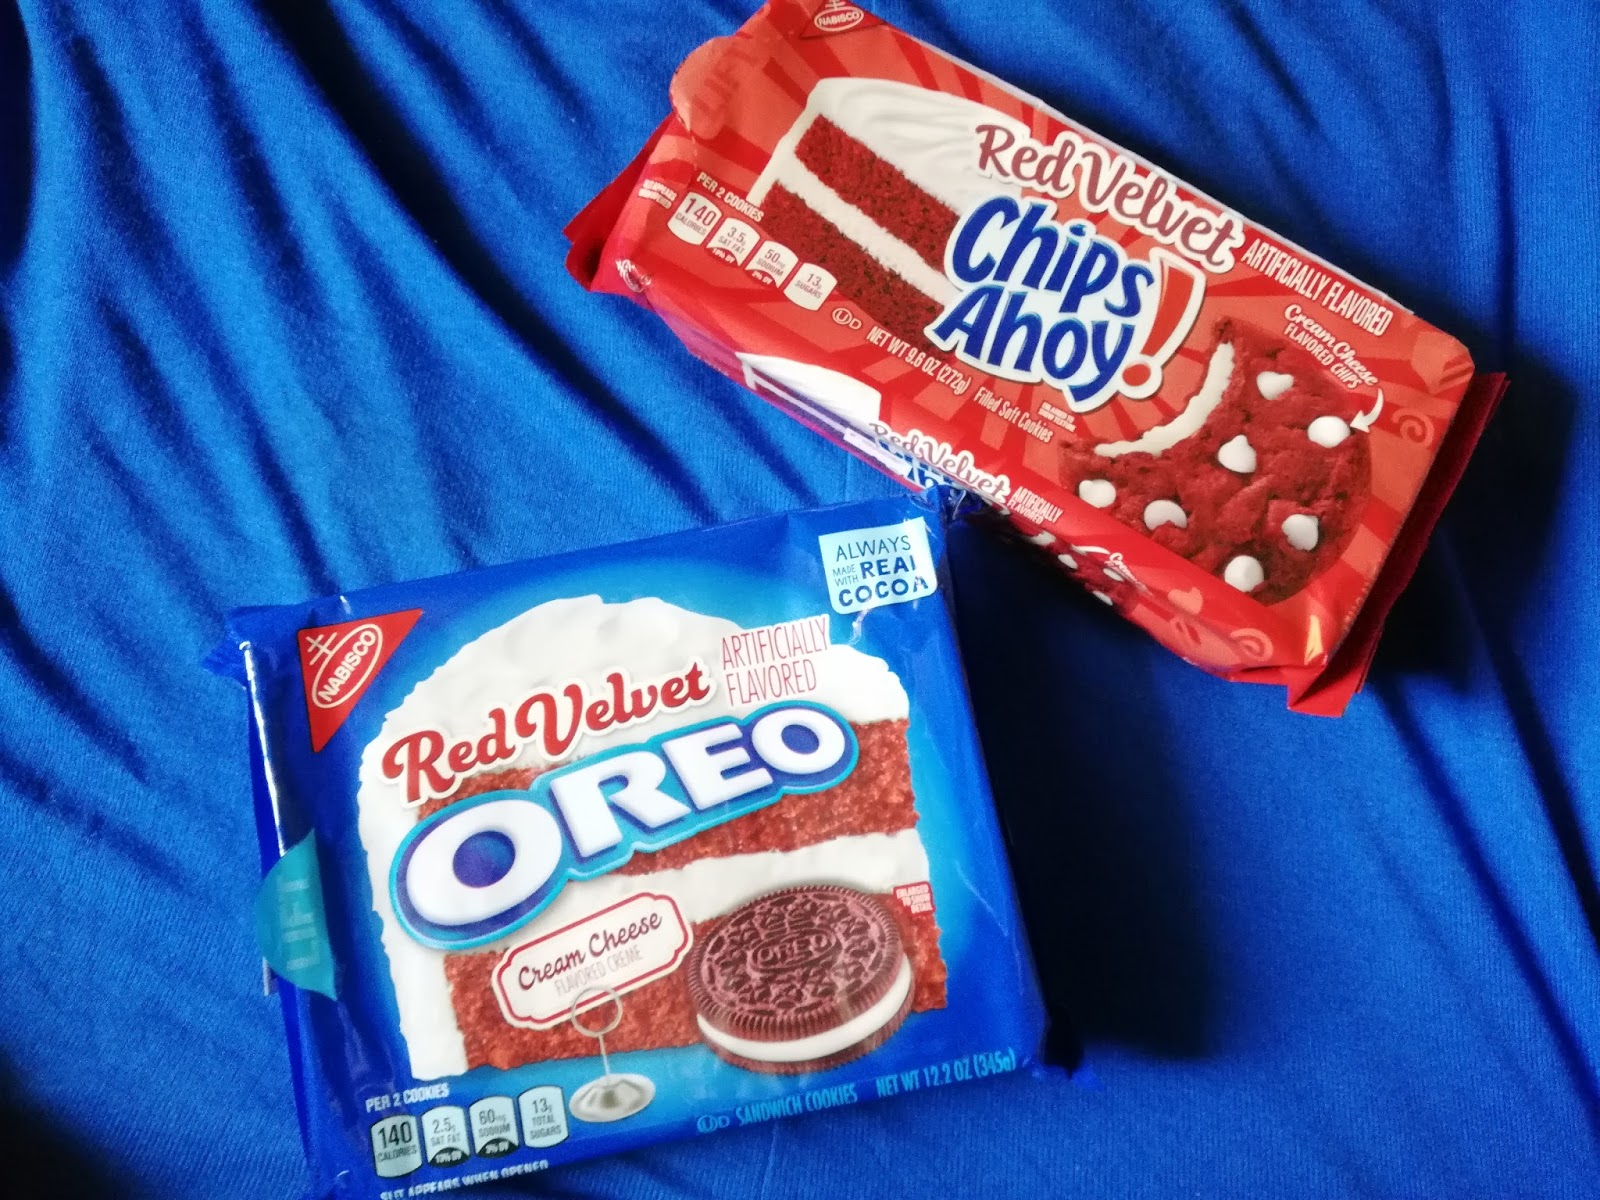 cienanigans what i say nabisco oreo and chips ahoy in red velvet